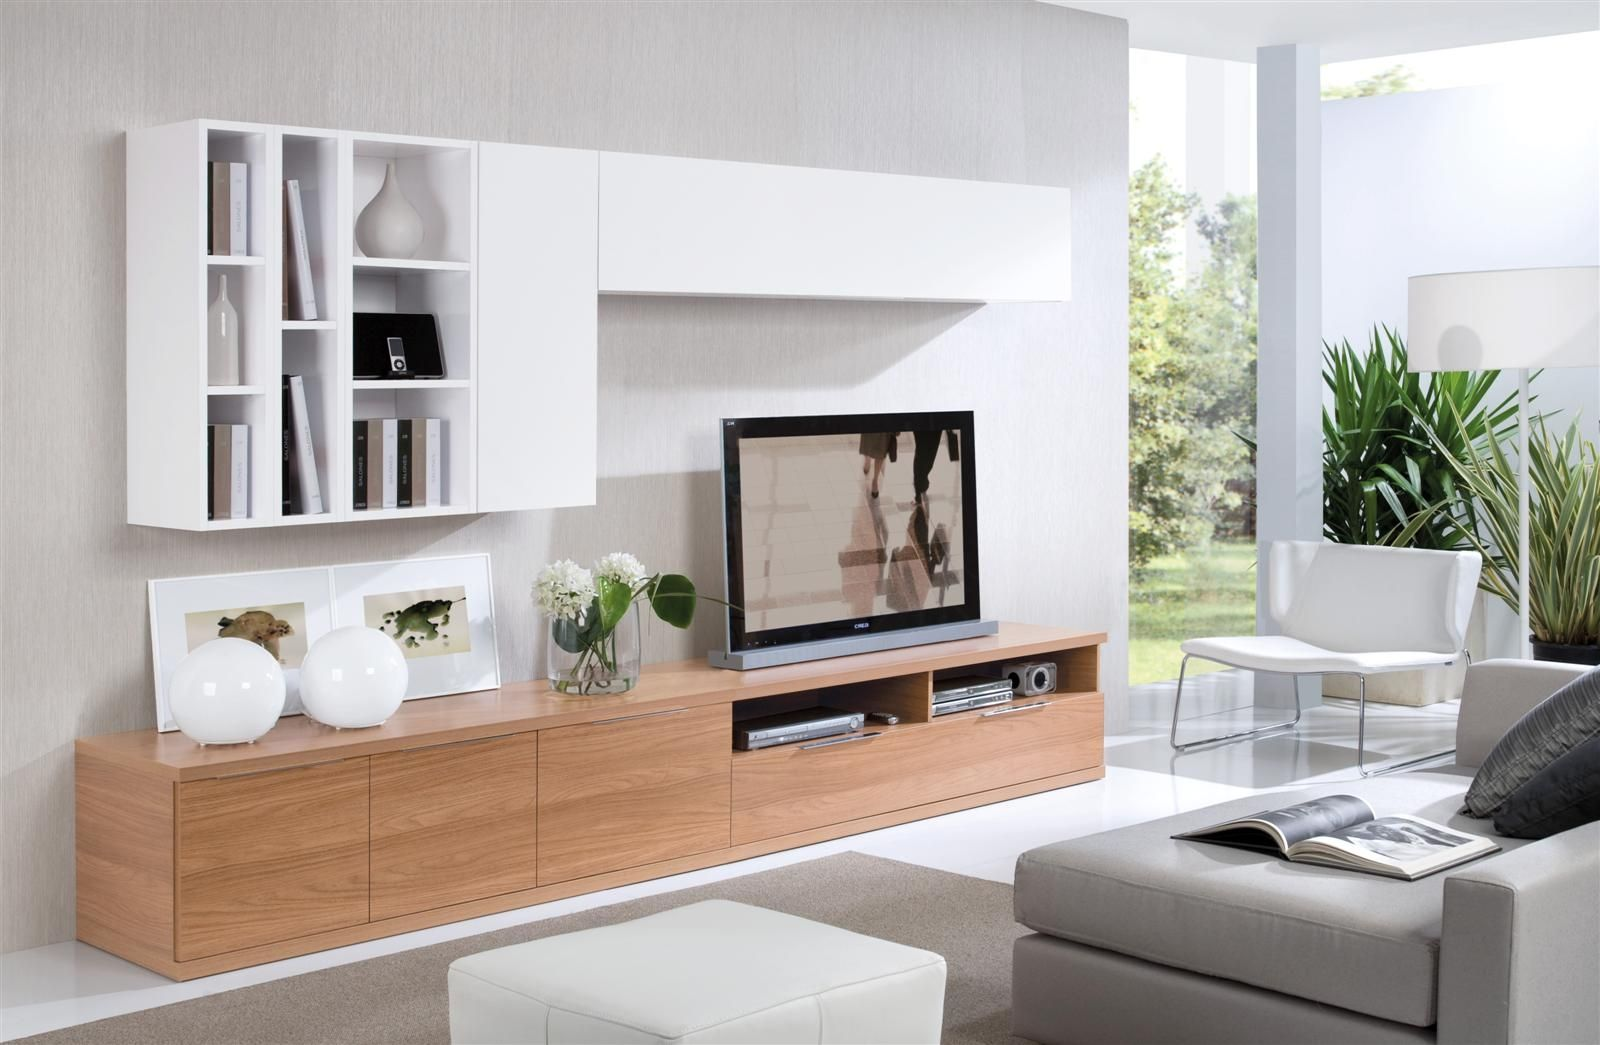 Modern Cabinets For Living Room Sigue Nuestras Ideas Para Organizar Y Decorar Cuarto De Television